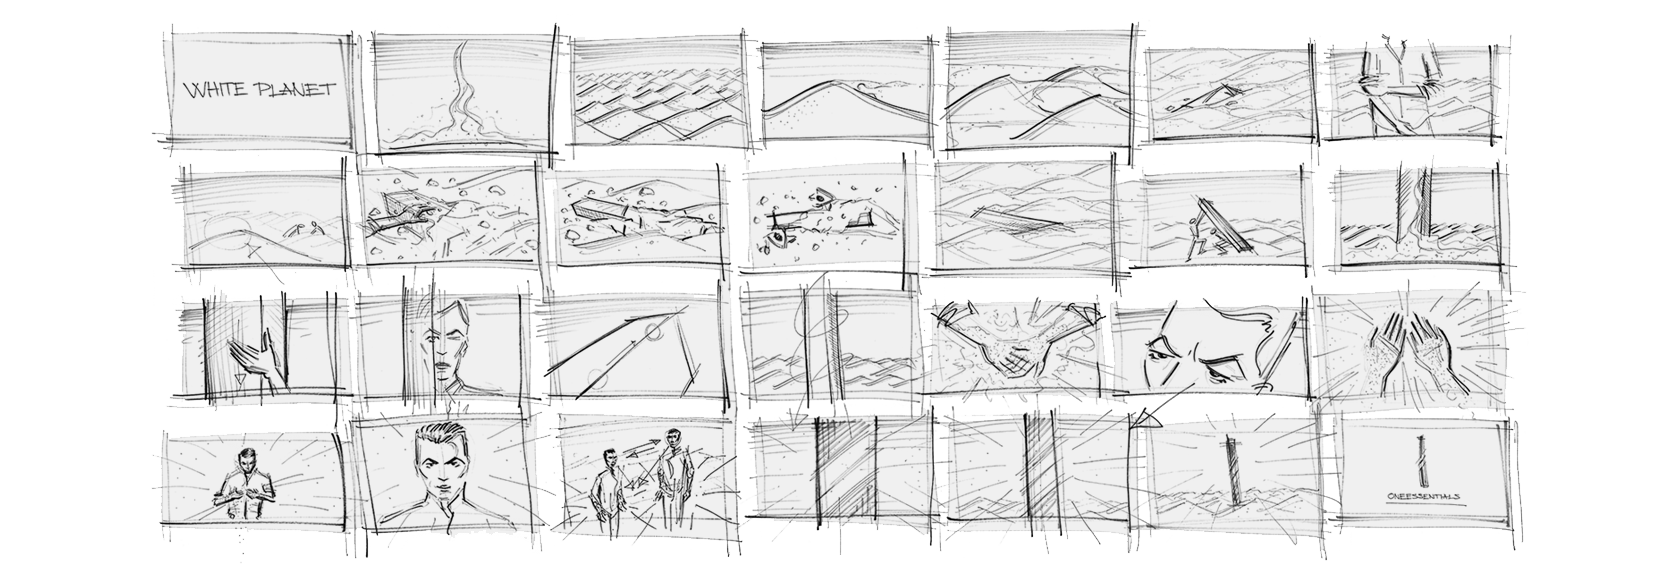 Storyboard Of White Planet image